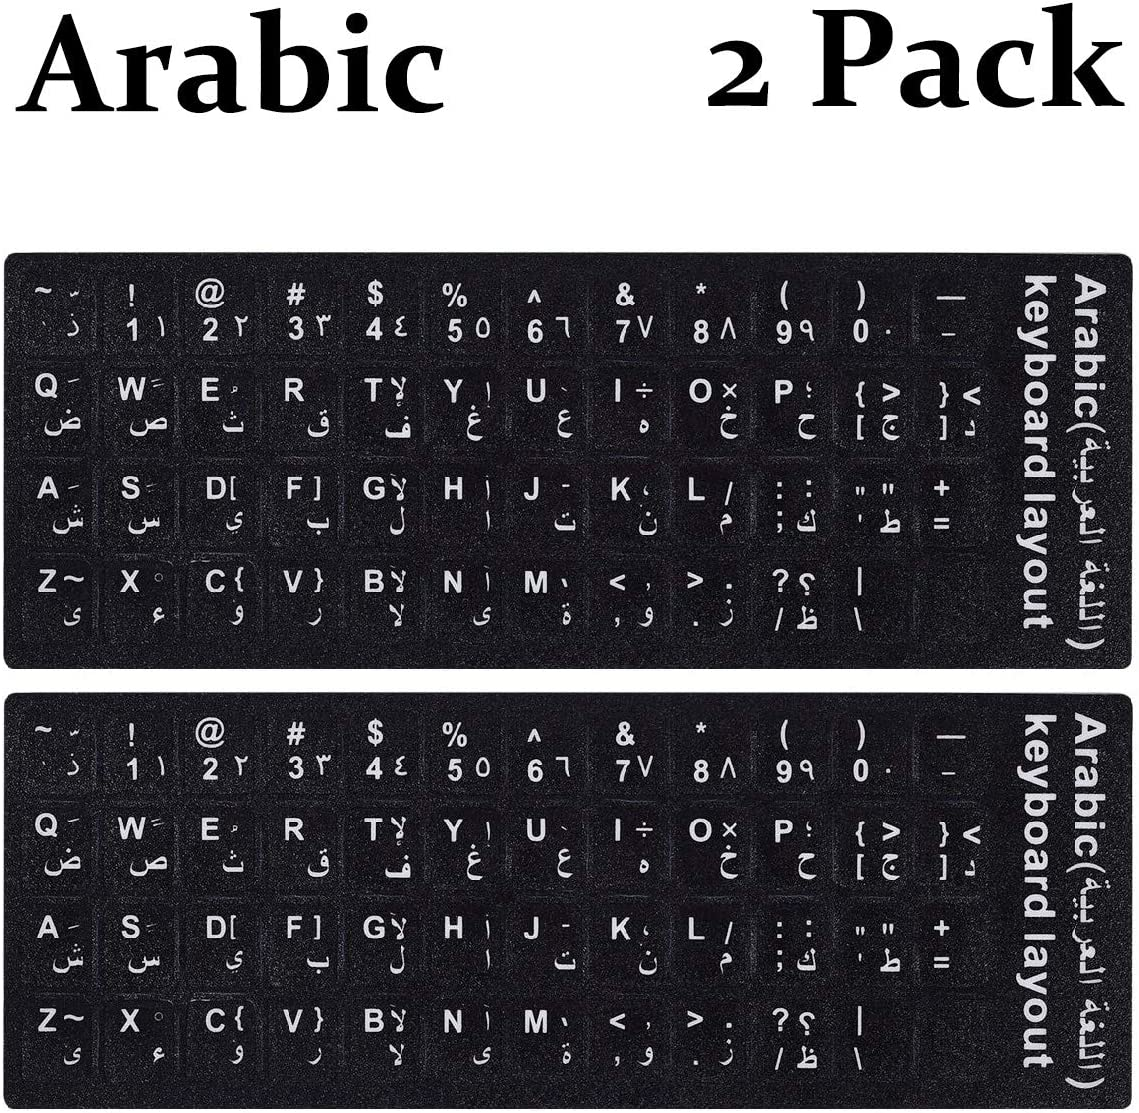 2PCS Pack Arabic Keyboard Stickers, Arabic English Keyboard Replacement Sticker with Black Background and  White Lettering for Computer Notebook Laptop Desktop Keyboards